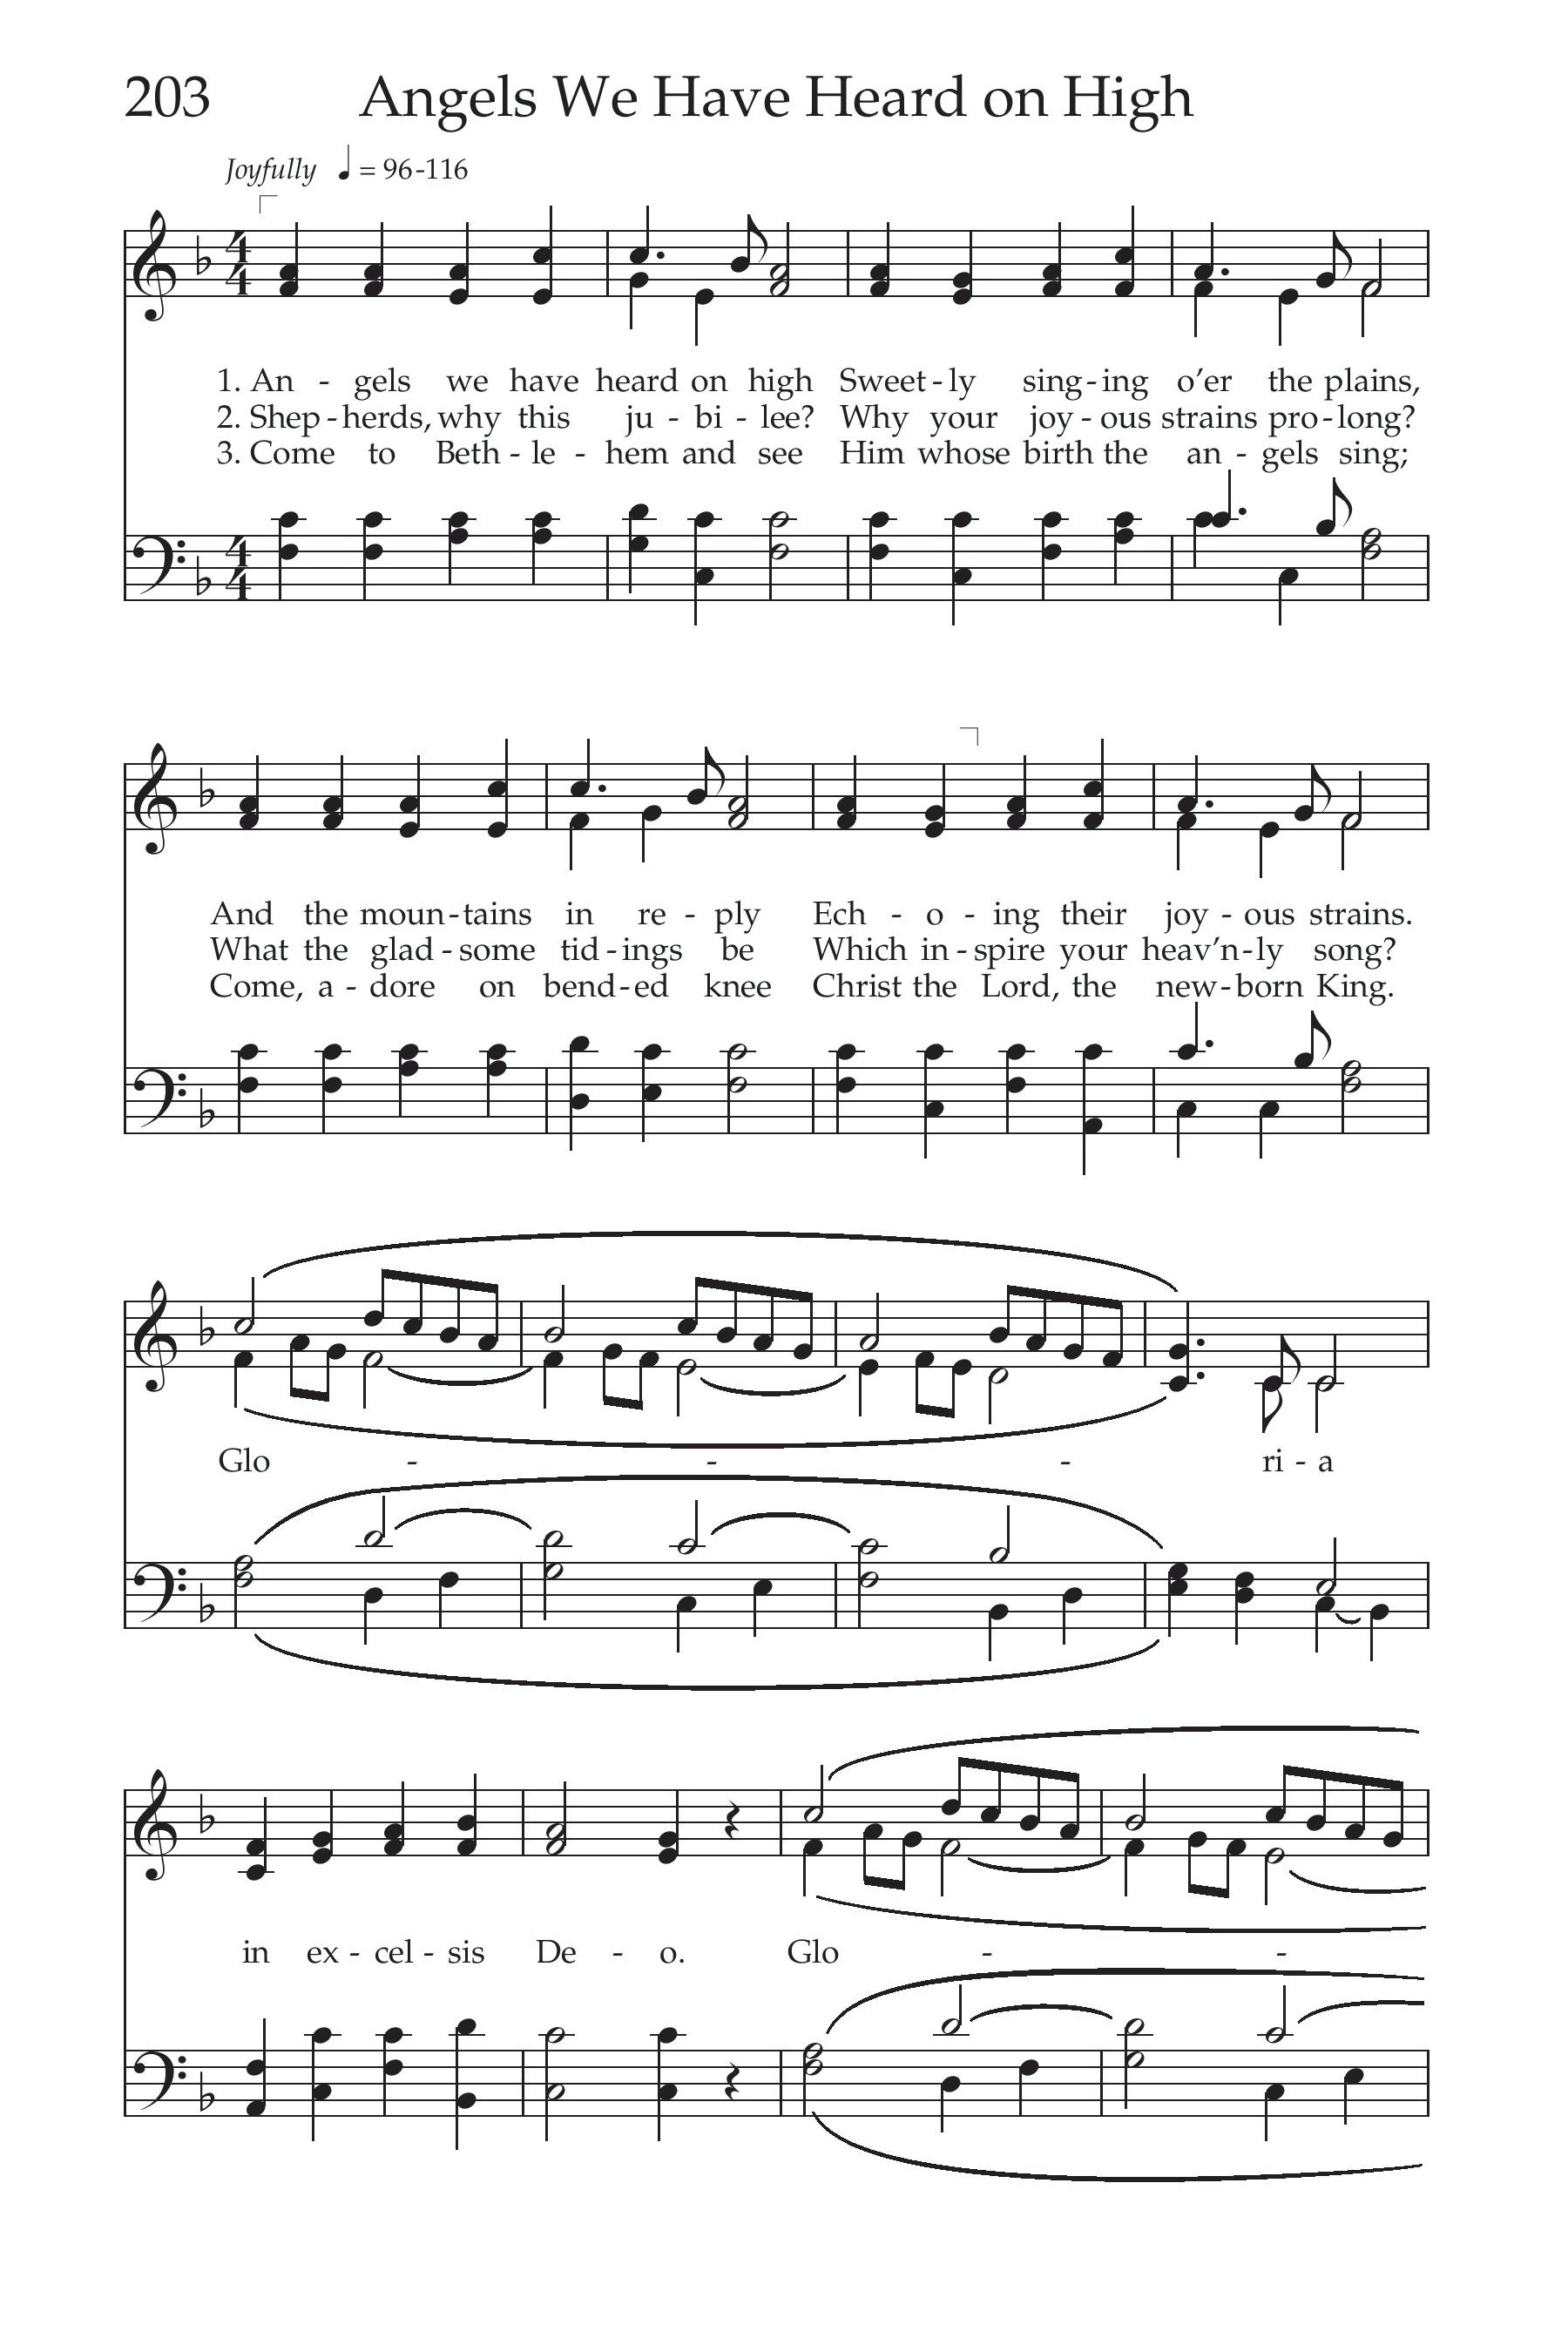 Hymns of the Church of Jesus Christ of Latter-day Saints page 210